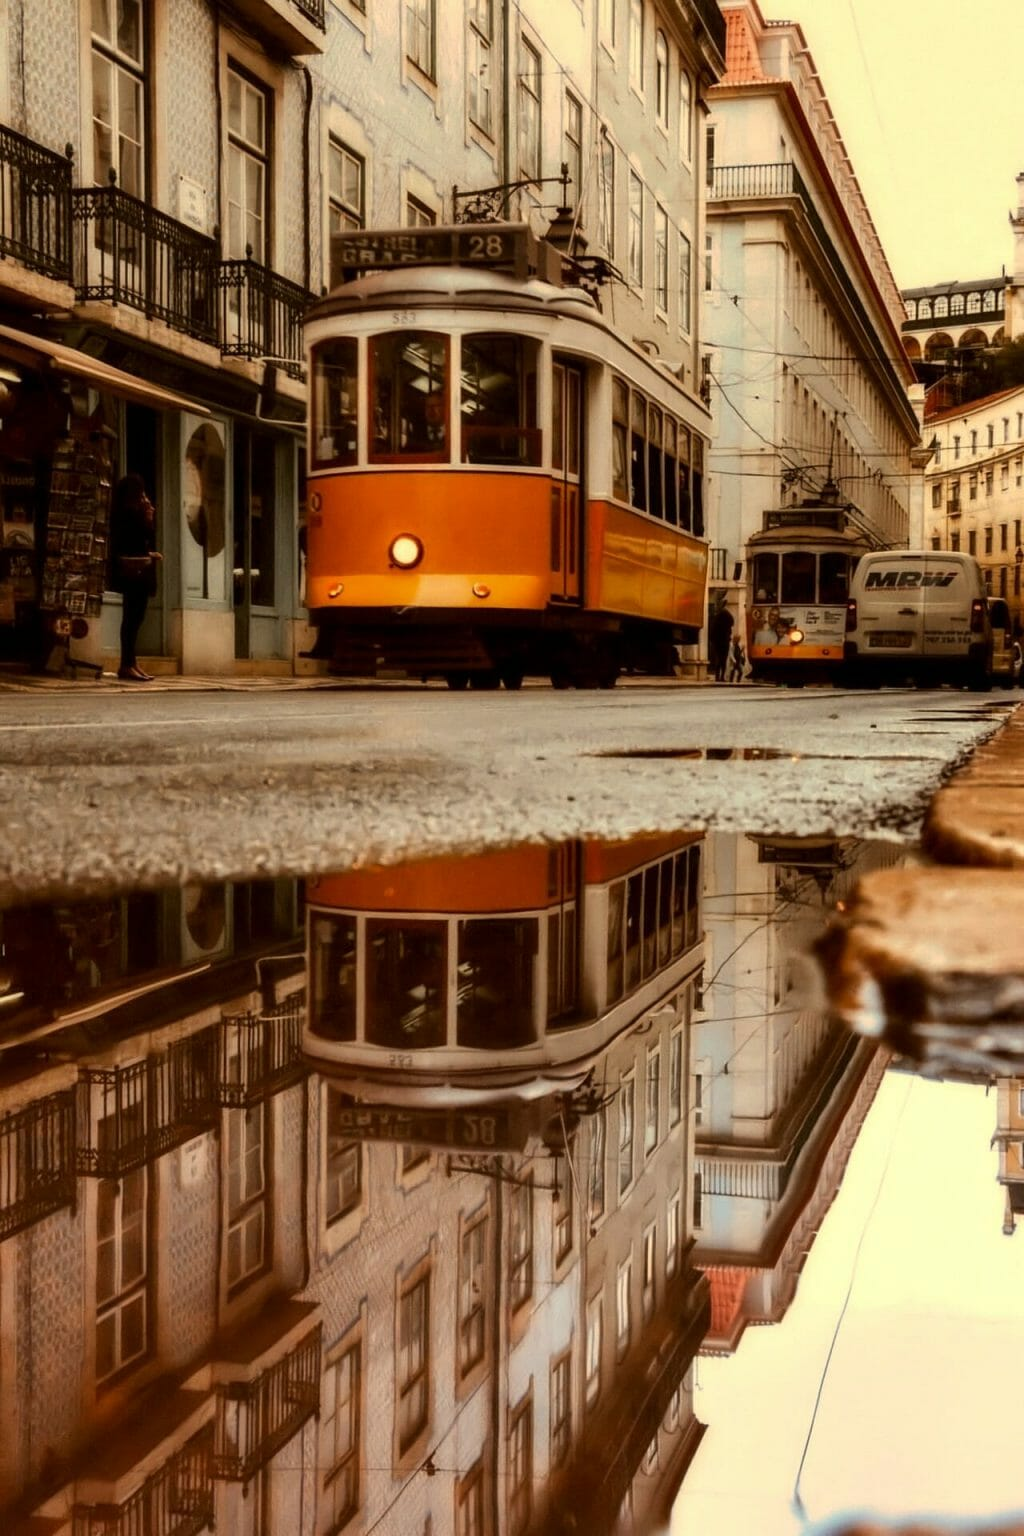 Big puddle in the ground reflecting an orange trolley car in a backstreet in Lisbon